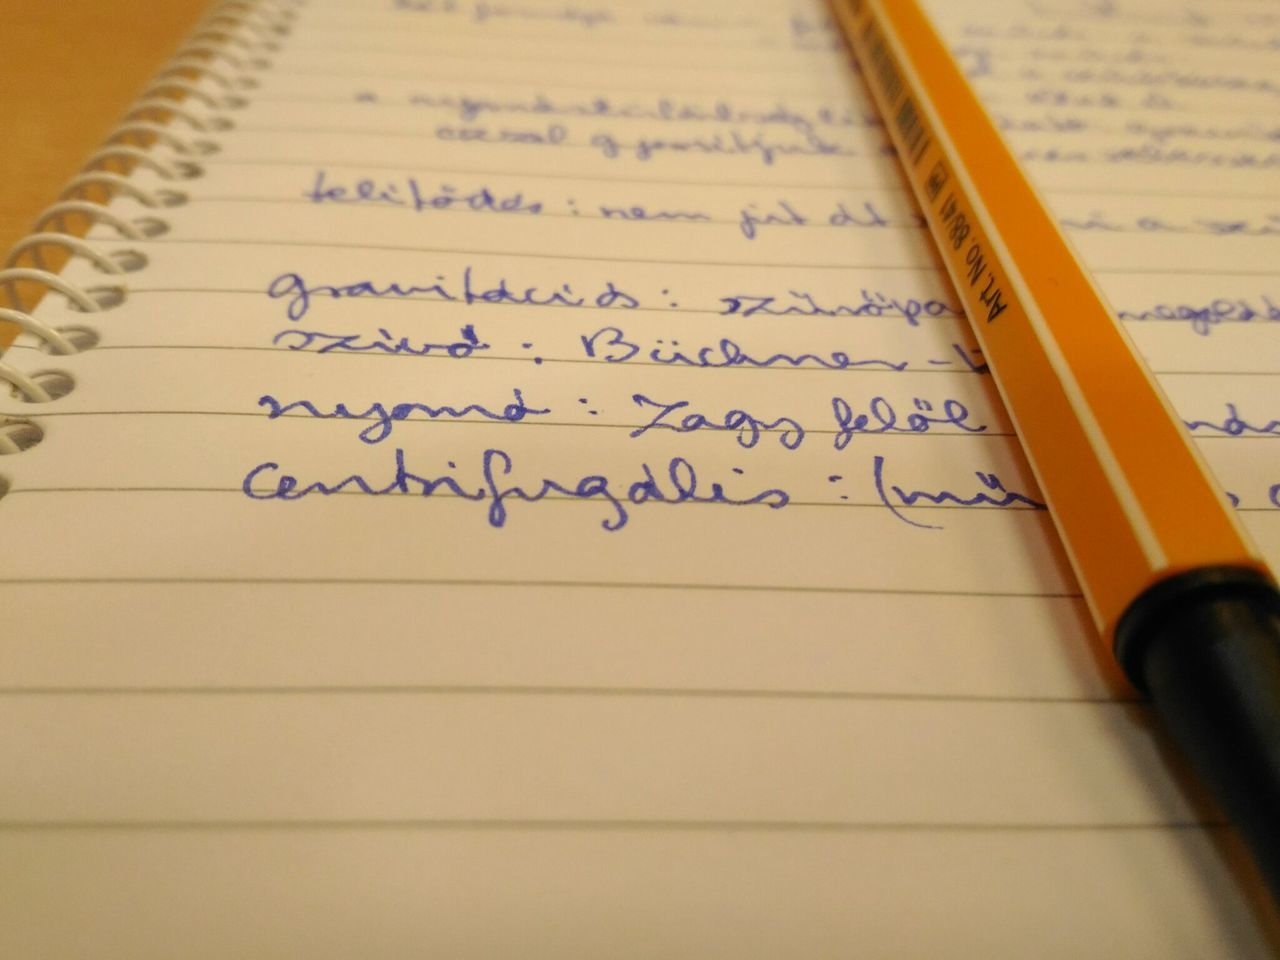 Lecture Handwriting  Pencil Studying Words Paper Hungarian Language University Engineering AsusPixelMaster Asuszenfone2laser